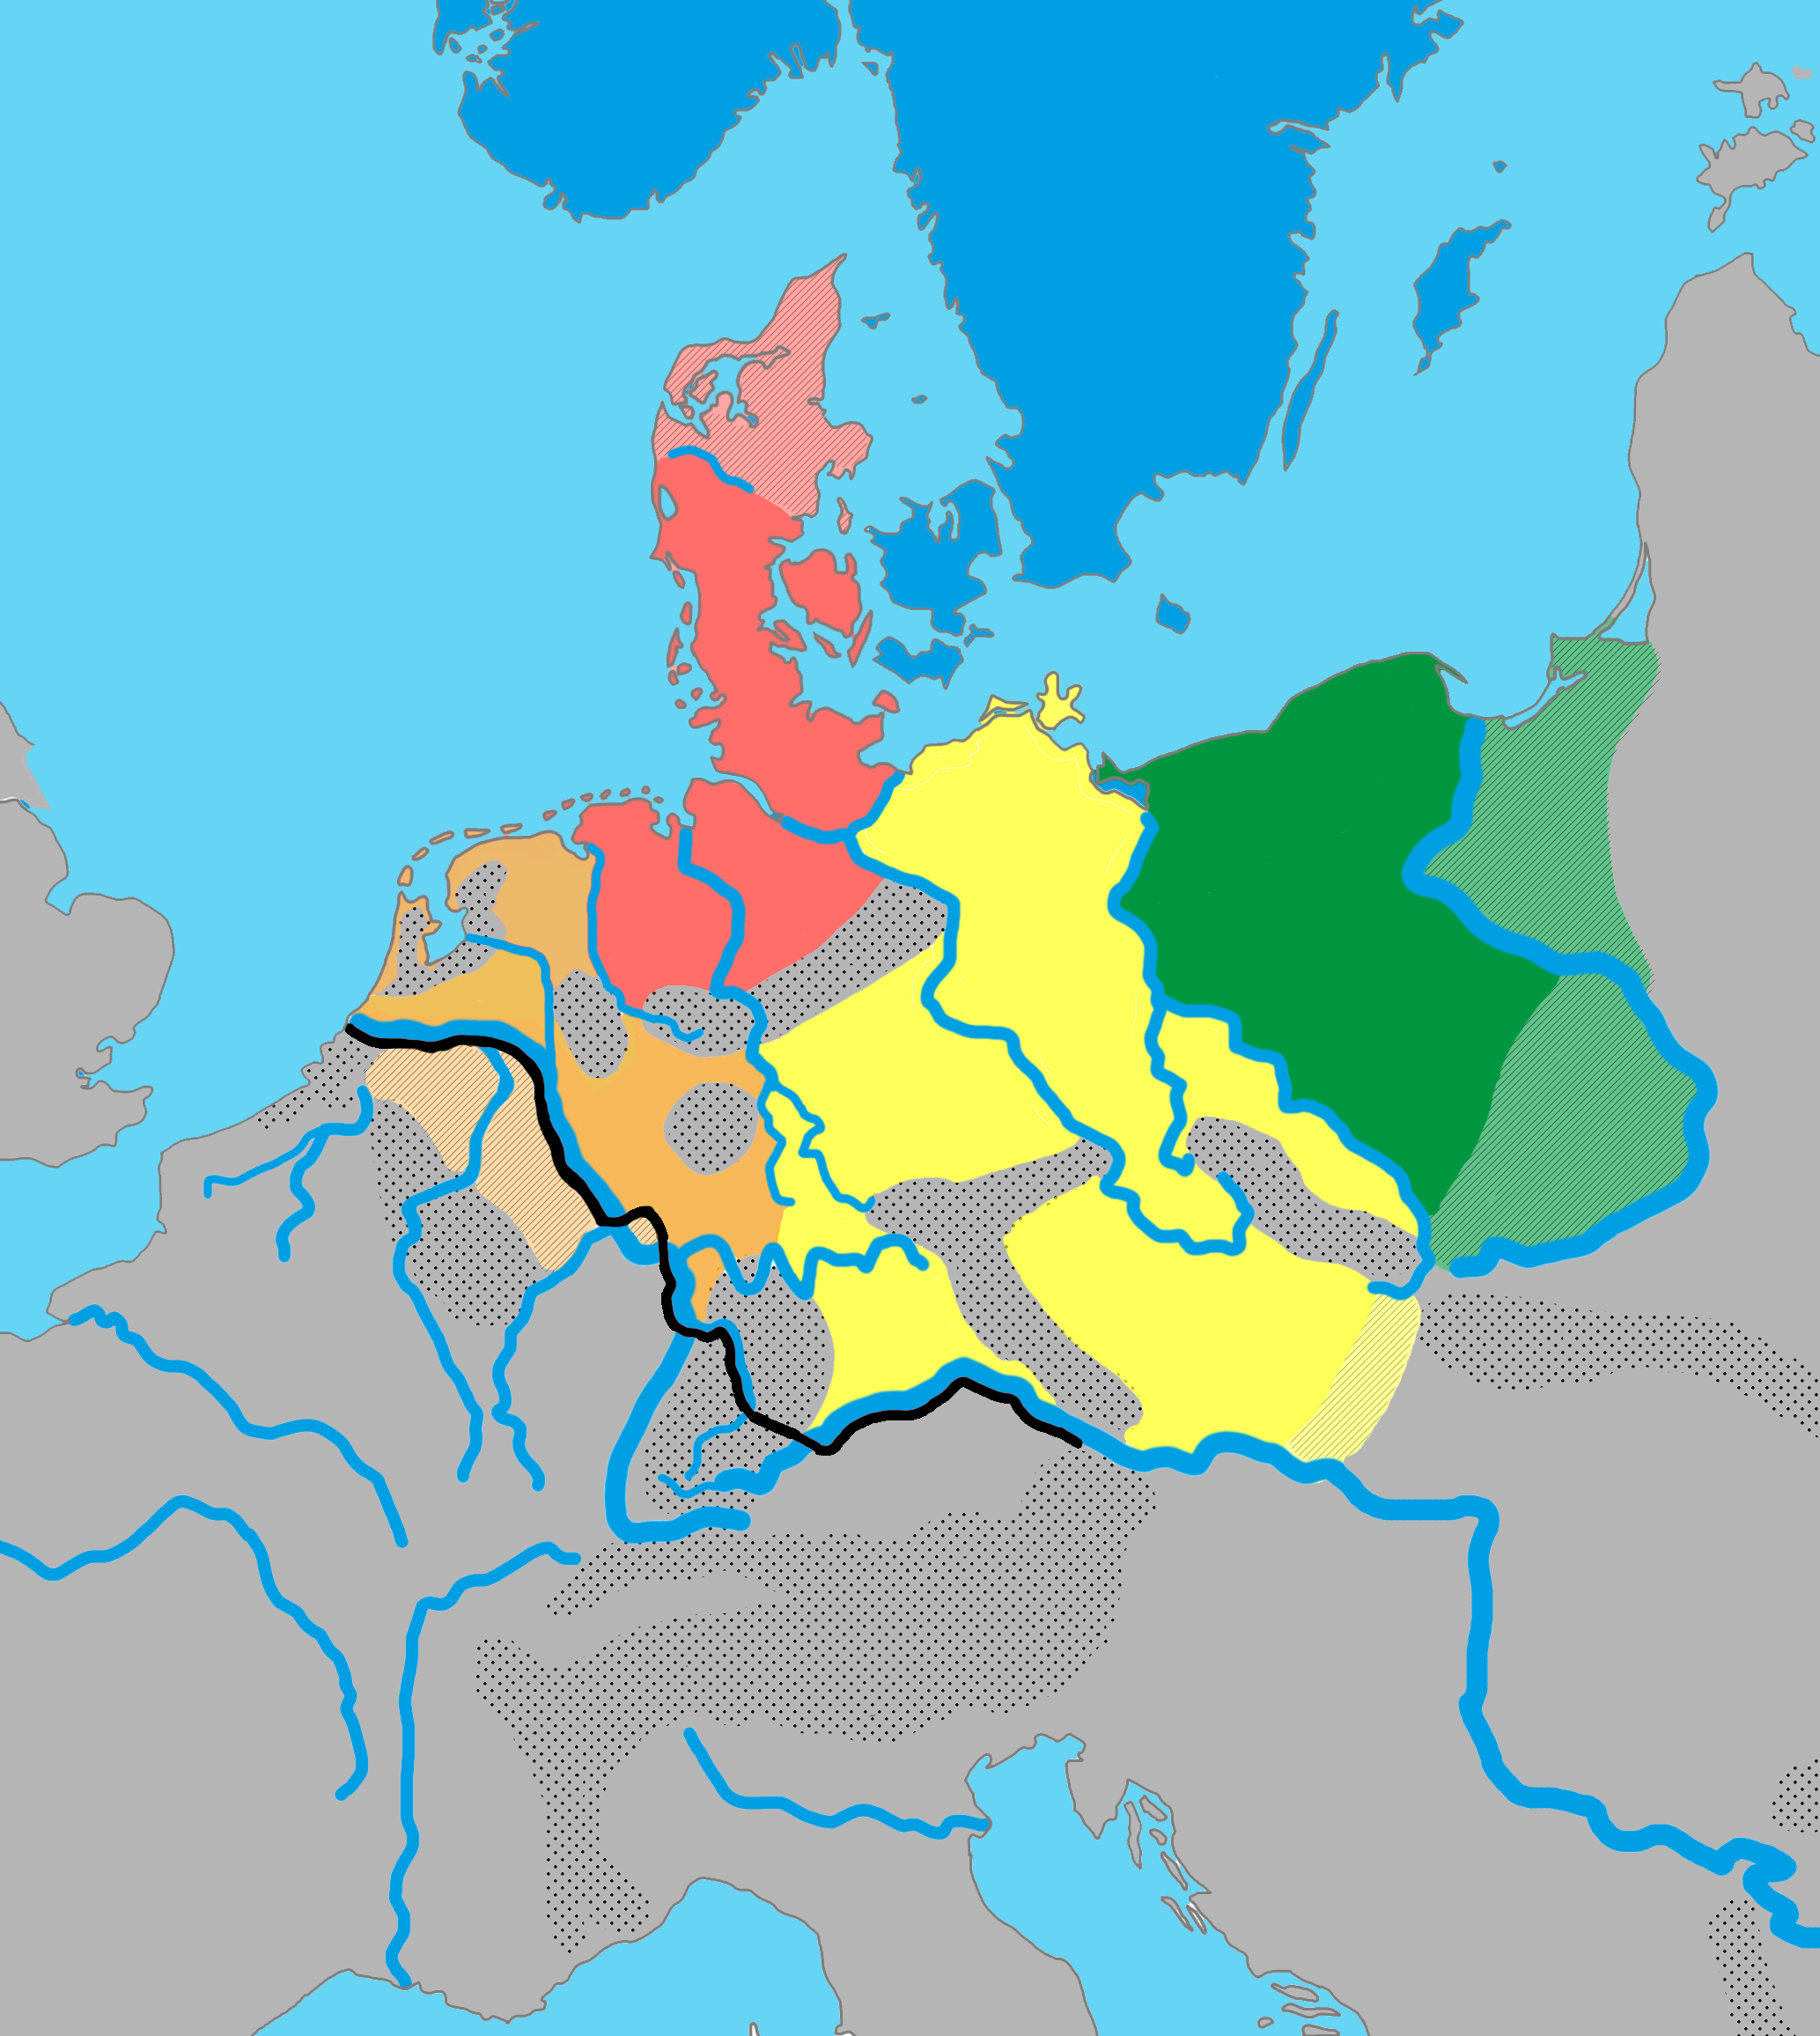 germanic languages German is a west germanic language spoken in germany, austria, switzerland, lichtenstein, and many other countries, by about 200 million people.